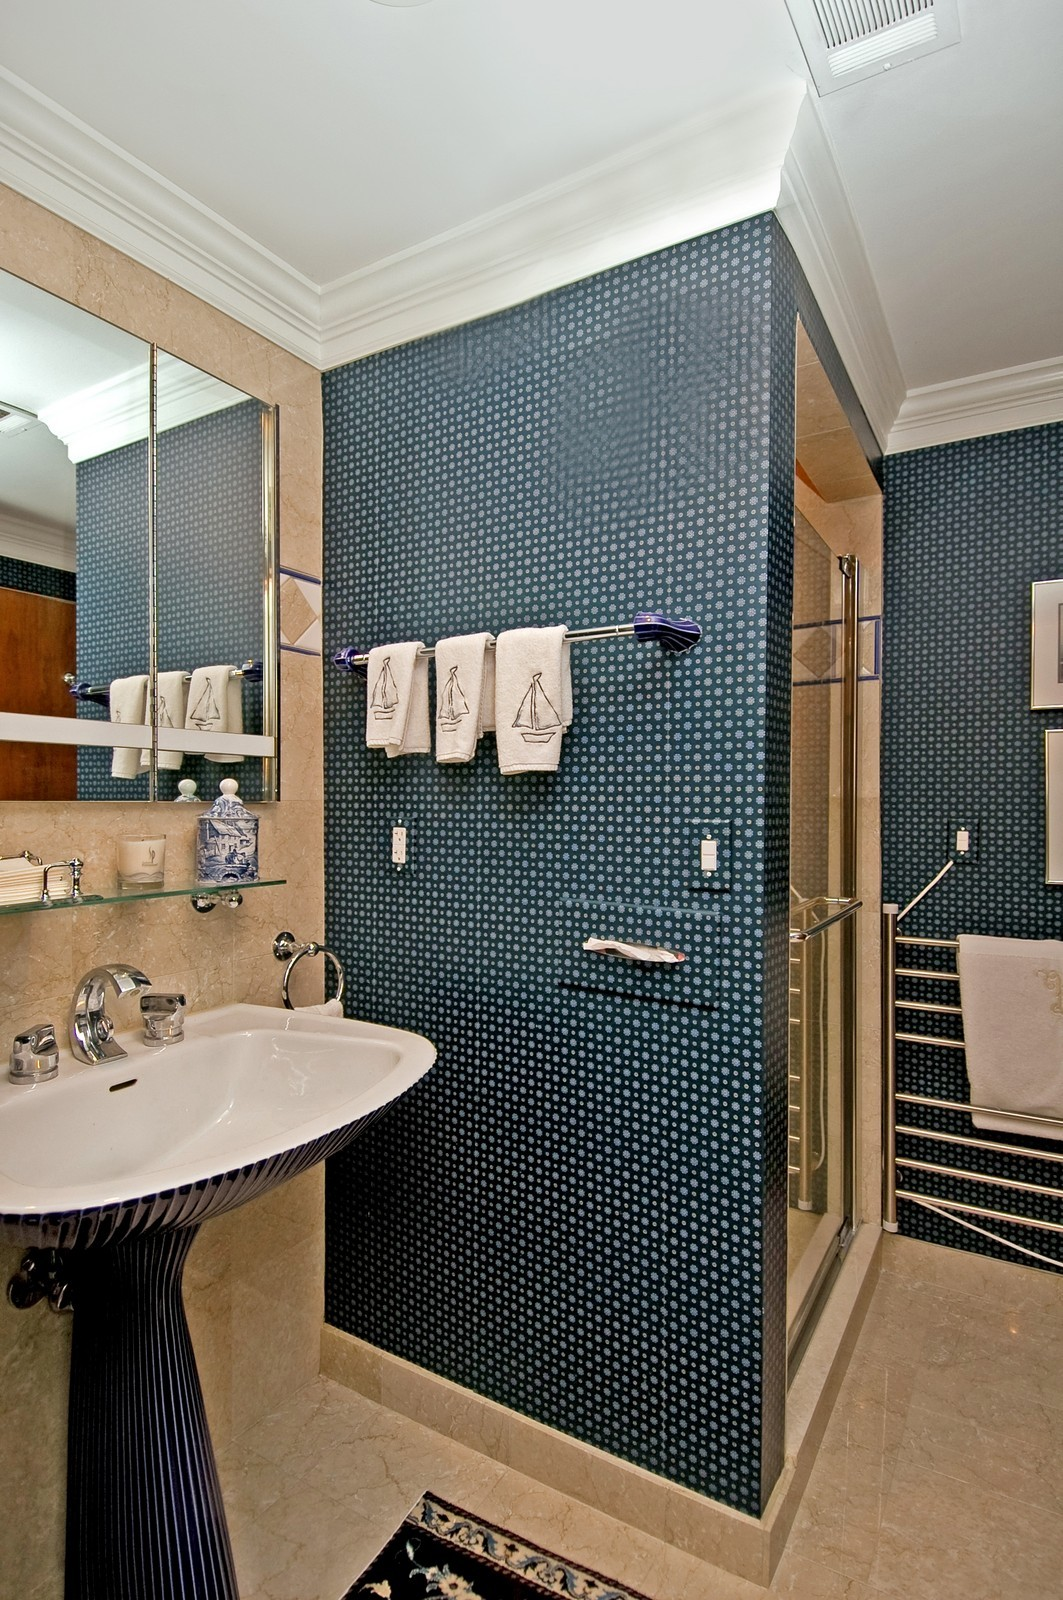 Real Estate Photography - 1700 Grandview Ave, Unit 603, Pittsburgh, PA, 15211 - Bathroom